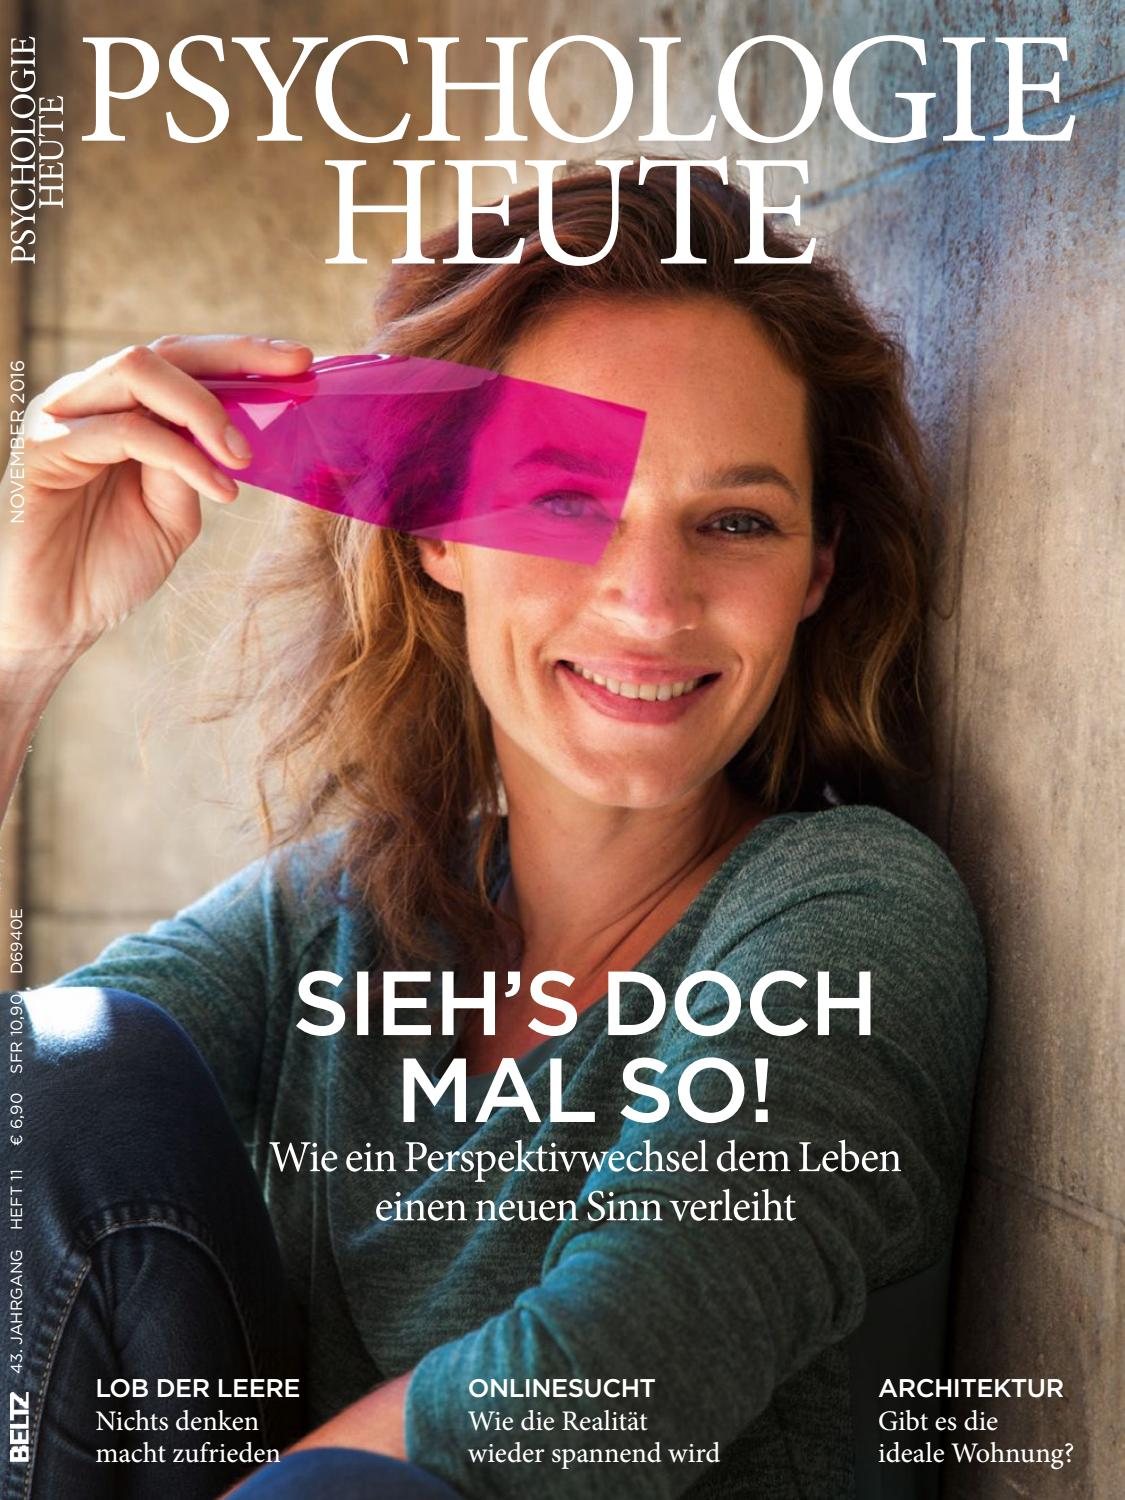 Psychologie Heute (Oktober 2015) by BrizziD - issuu